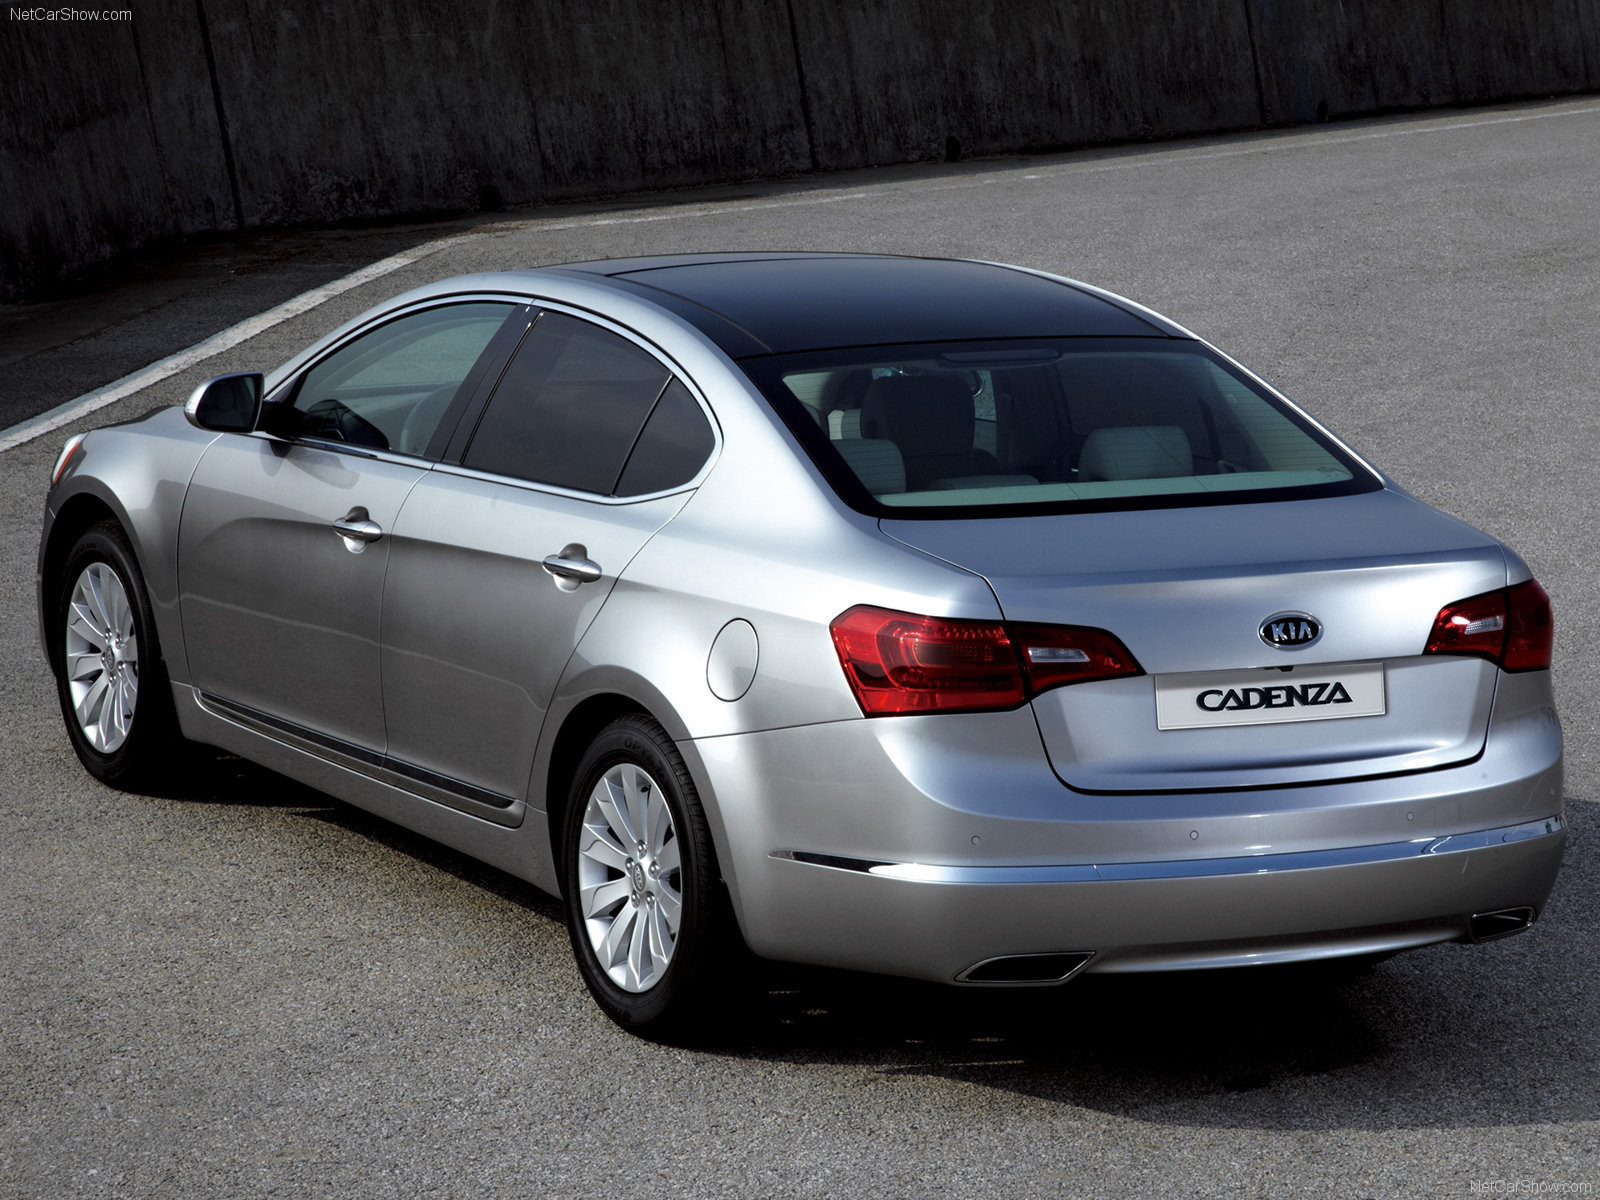 Kia Cadenza photo 69359